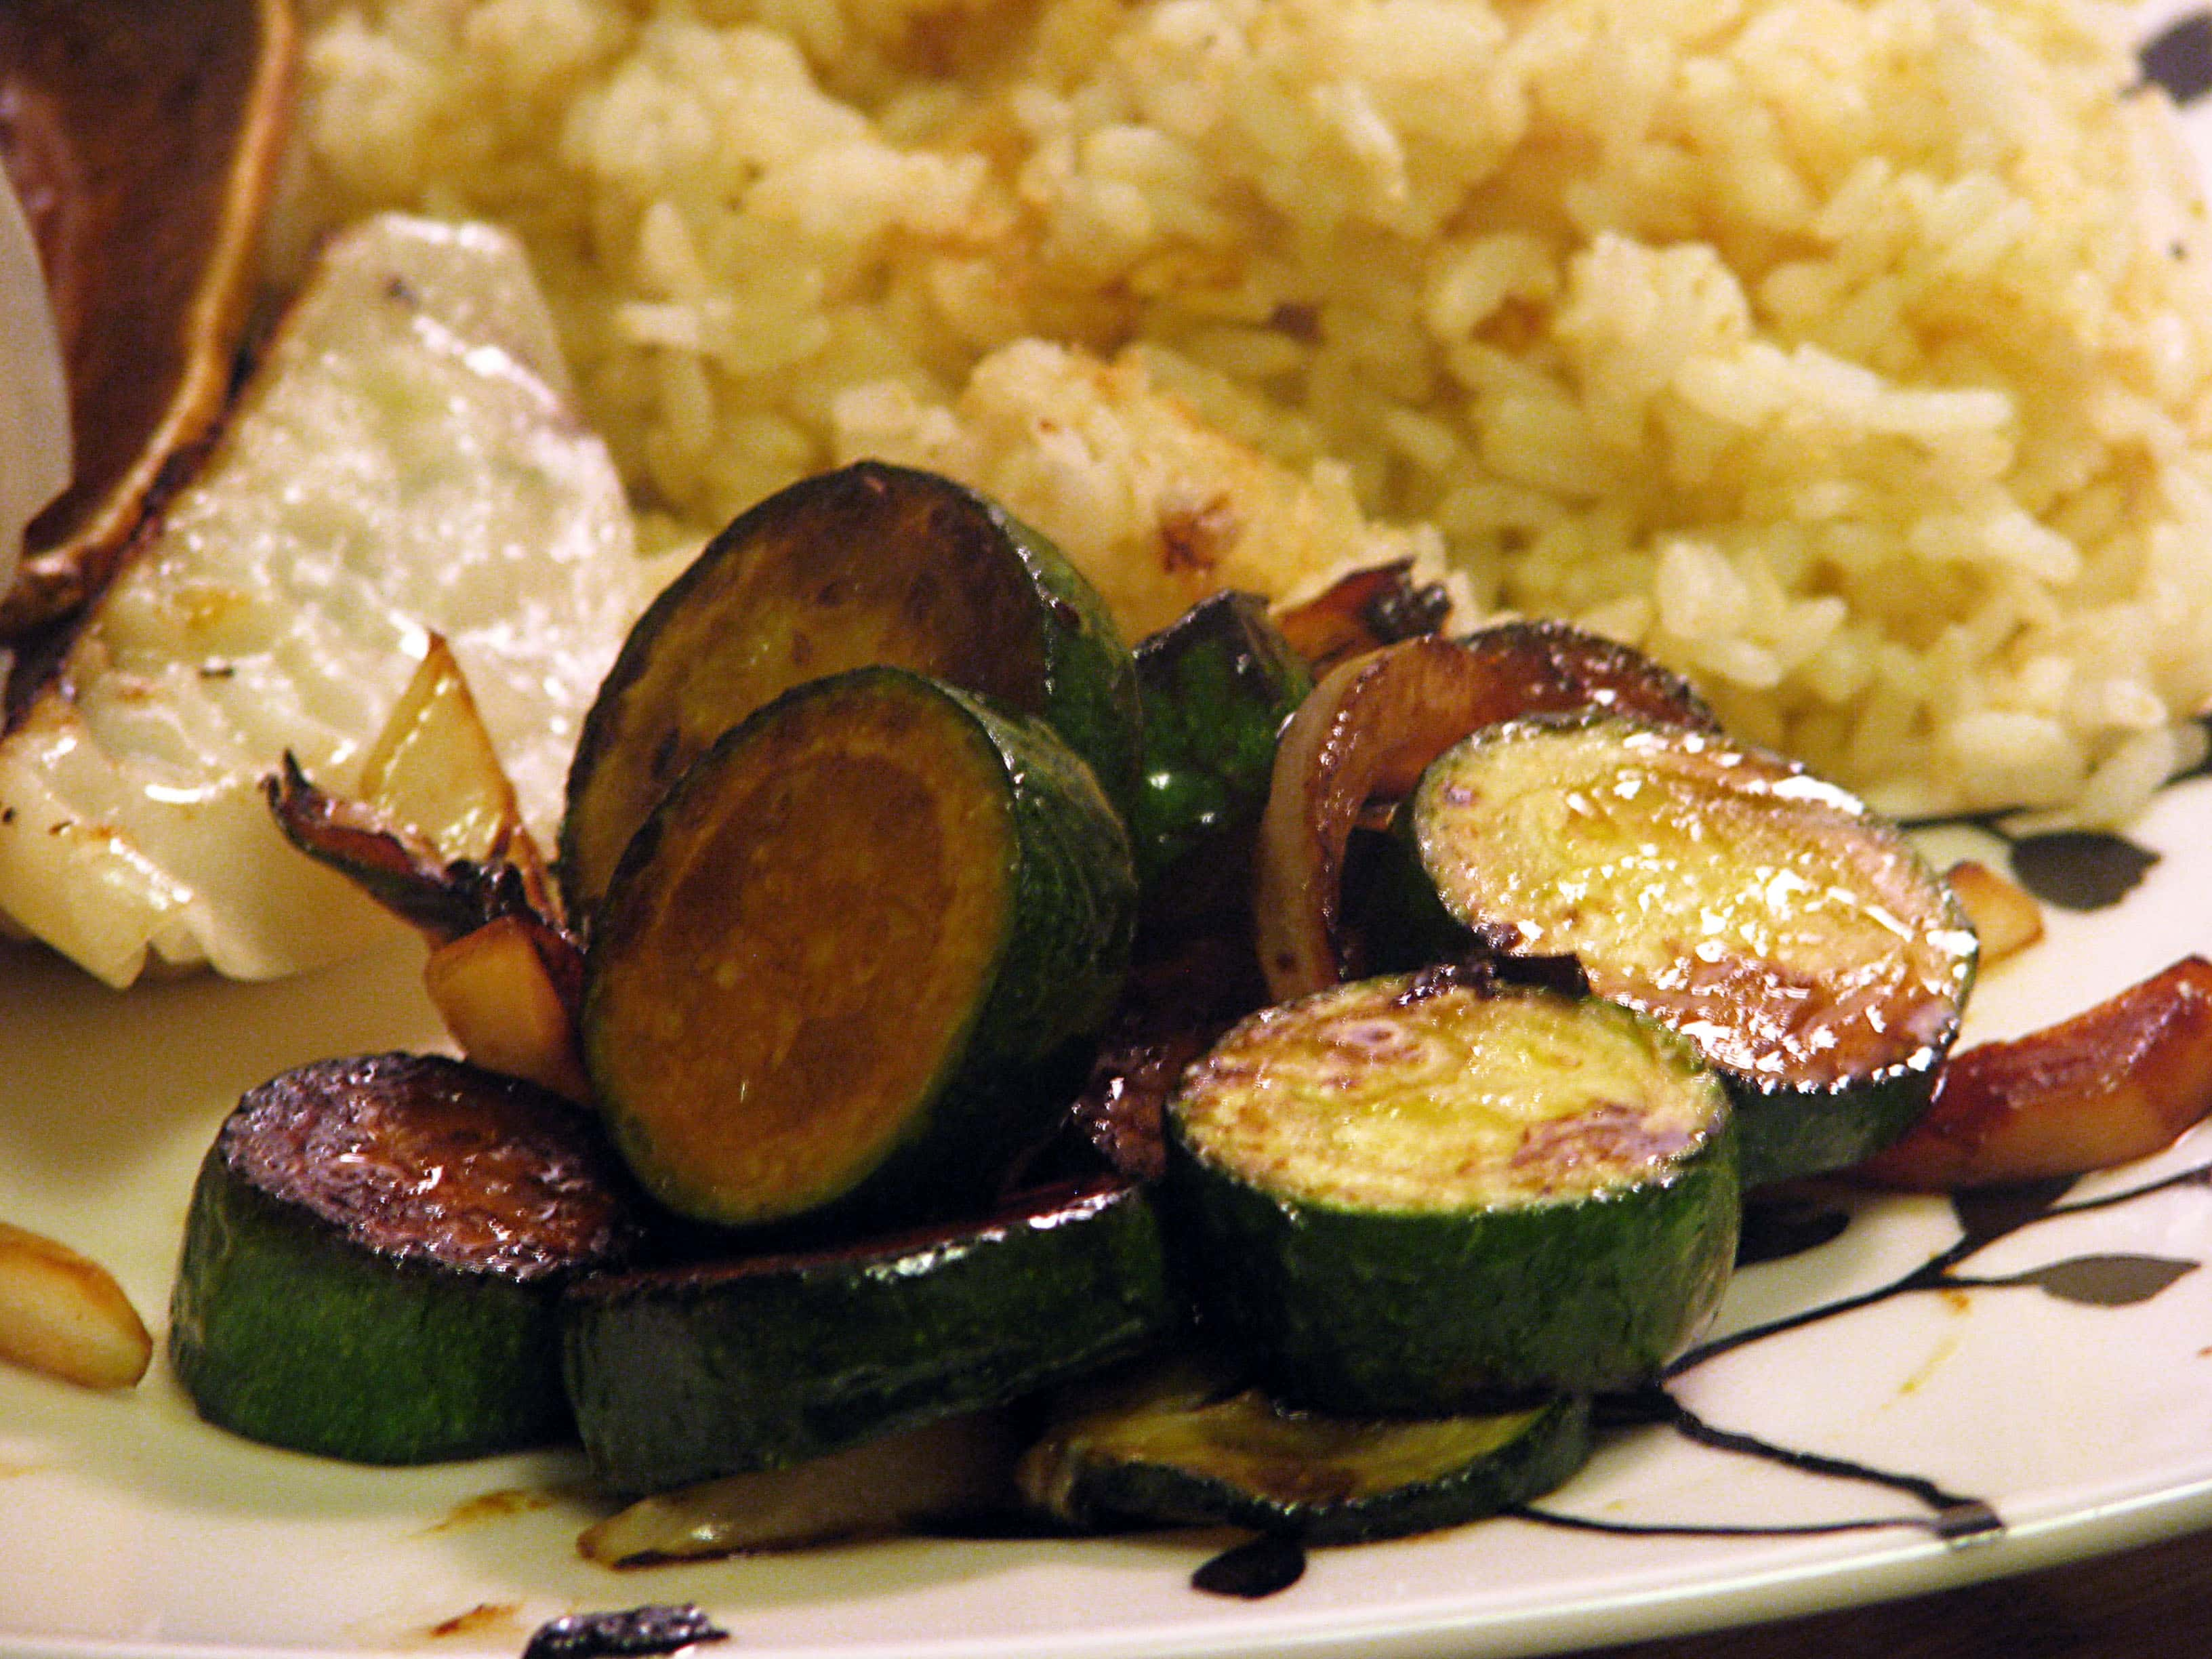 10-minute Side Dish: Sauteed Zucchini and Onions